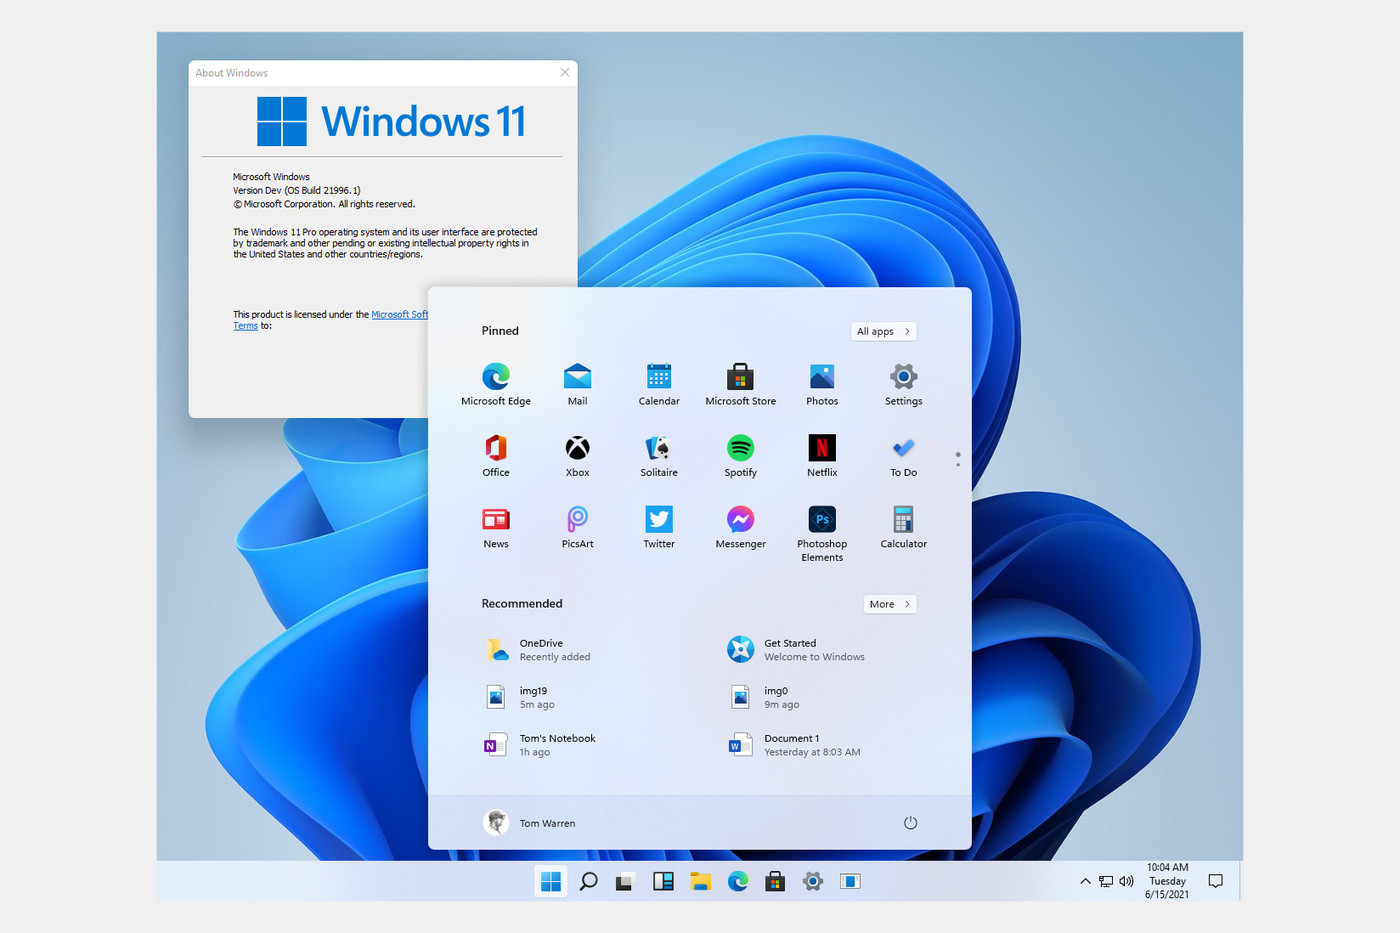 How to download a preview of Windows 11 - The Verge